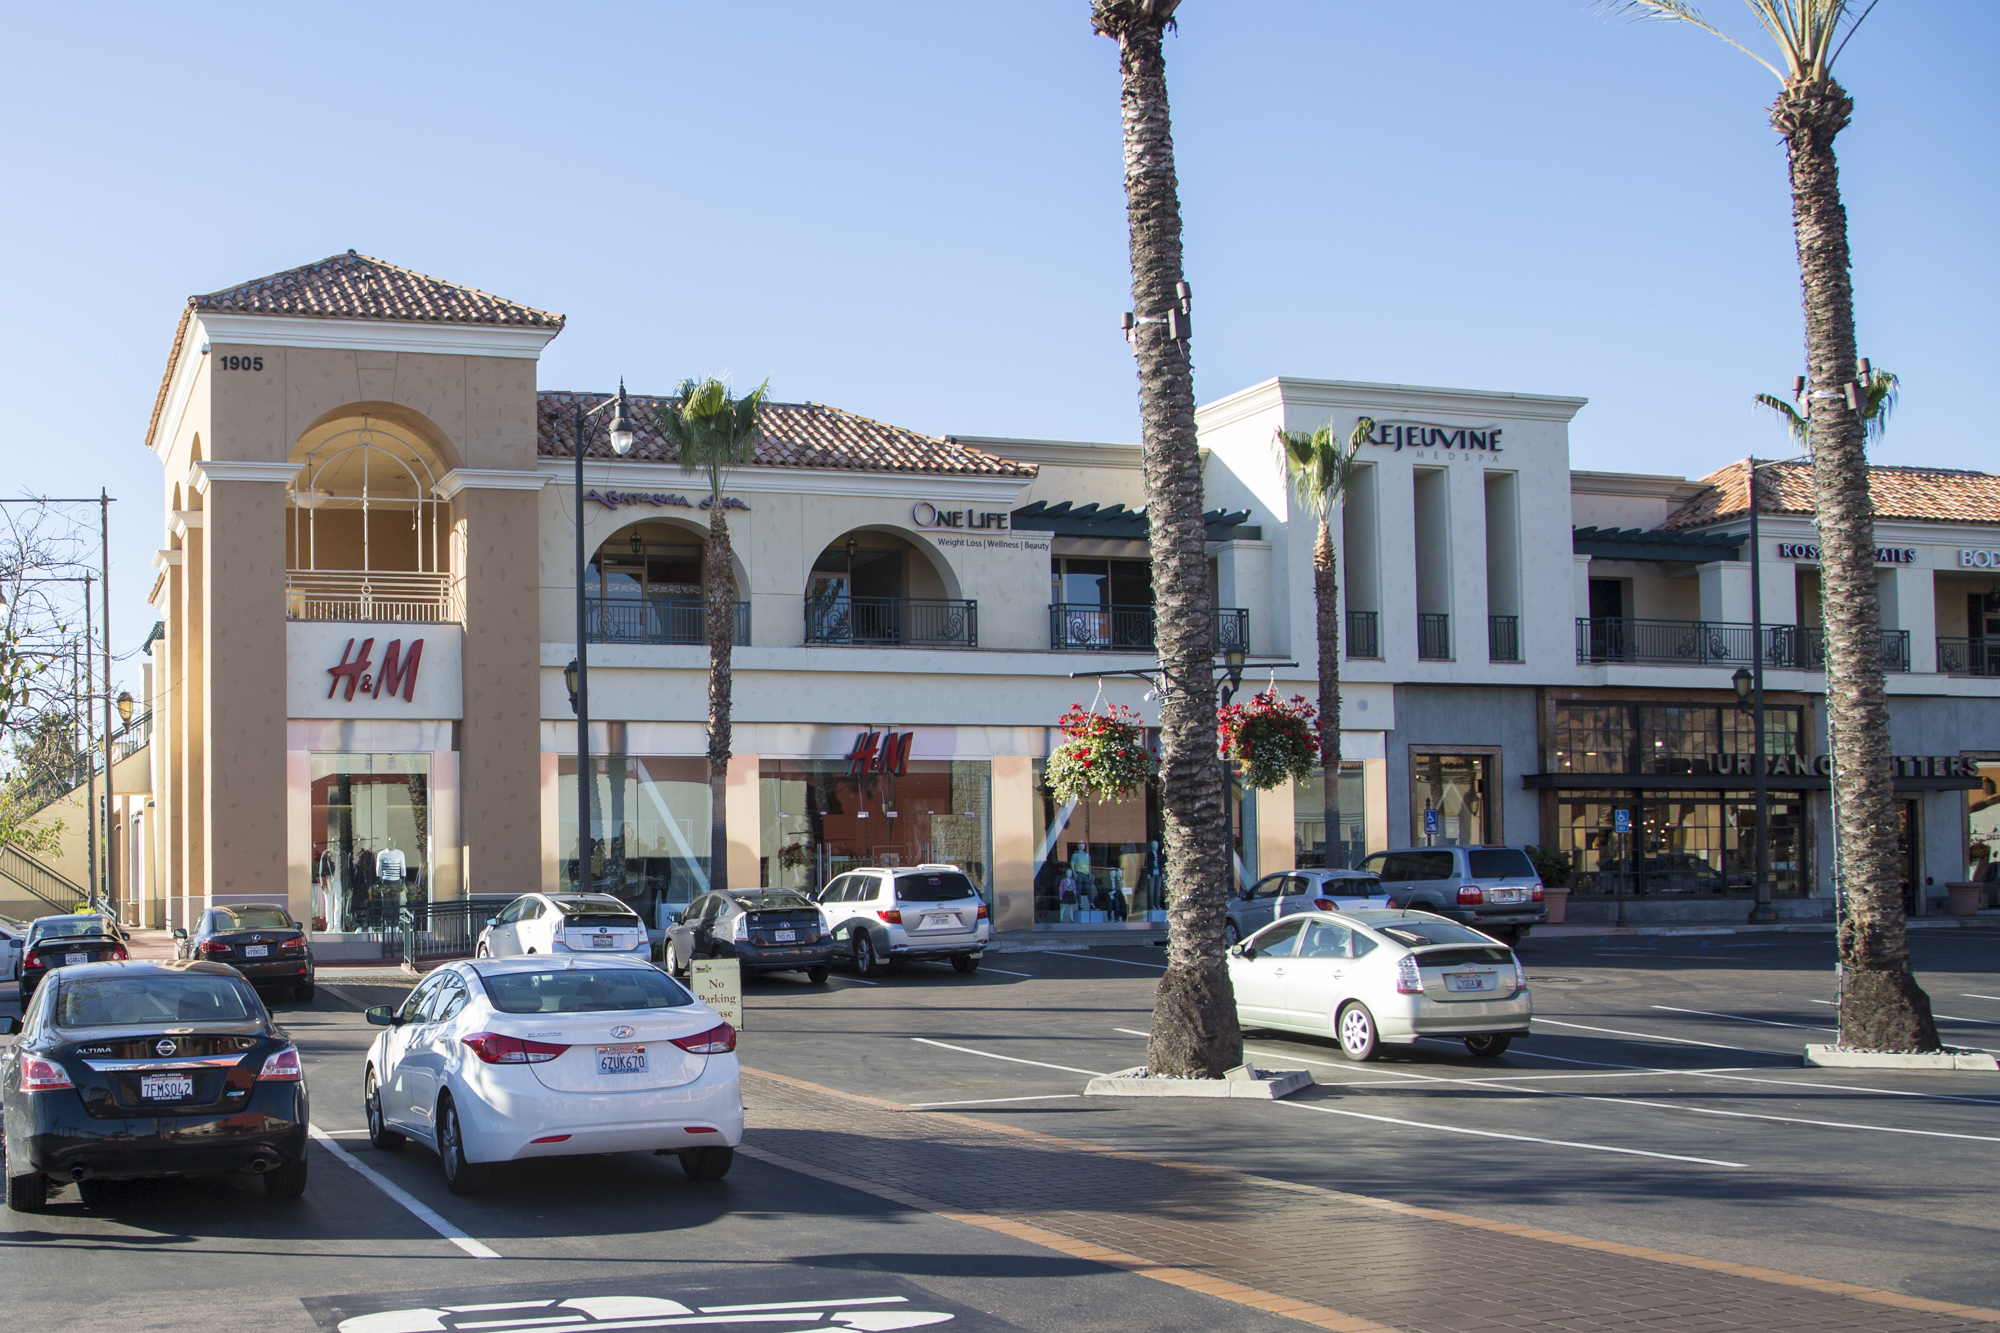 Carlsbad   The Forum 1905 Calle Barcelona #216  Carlsbad CA 92009